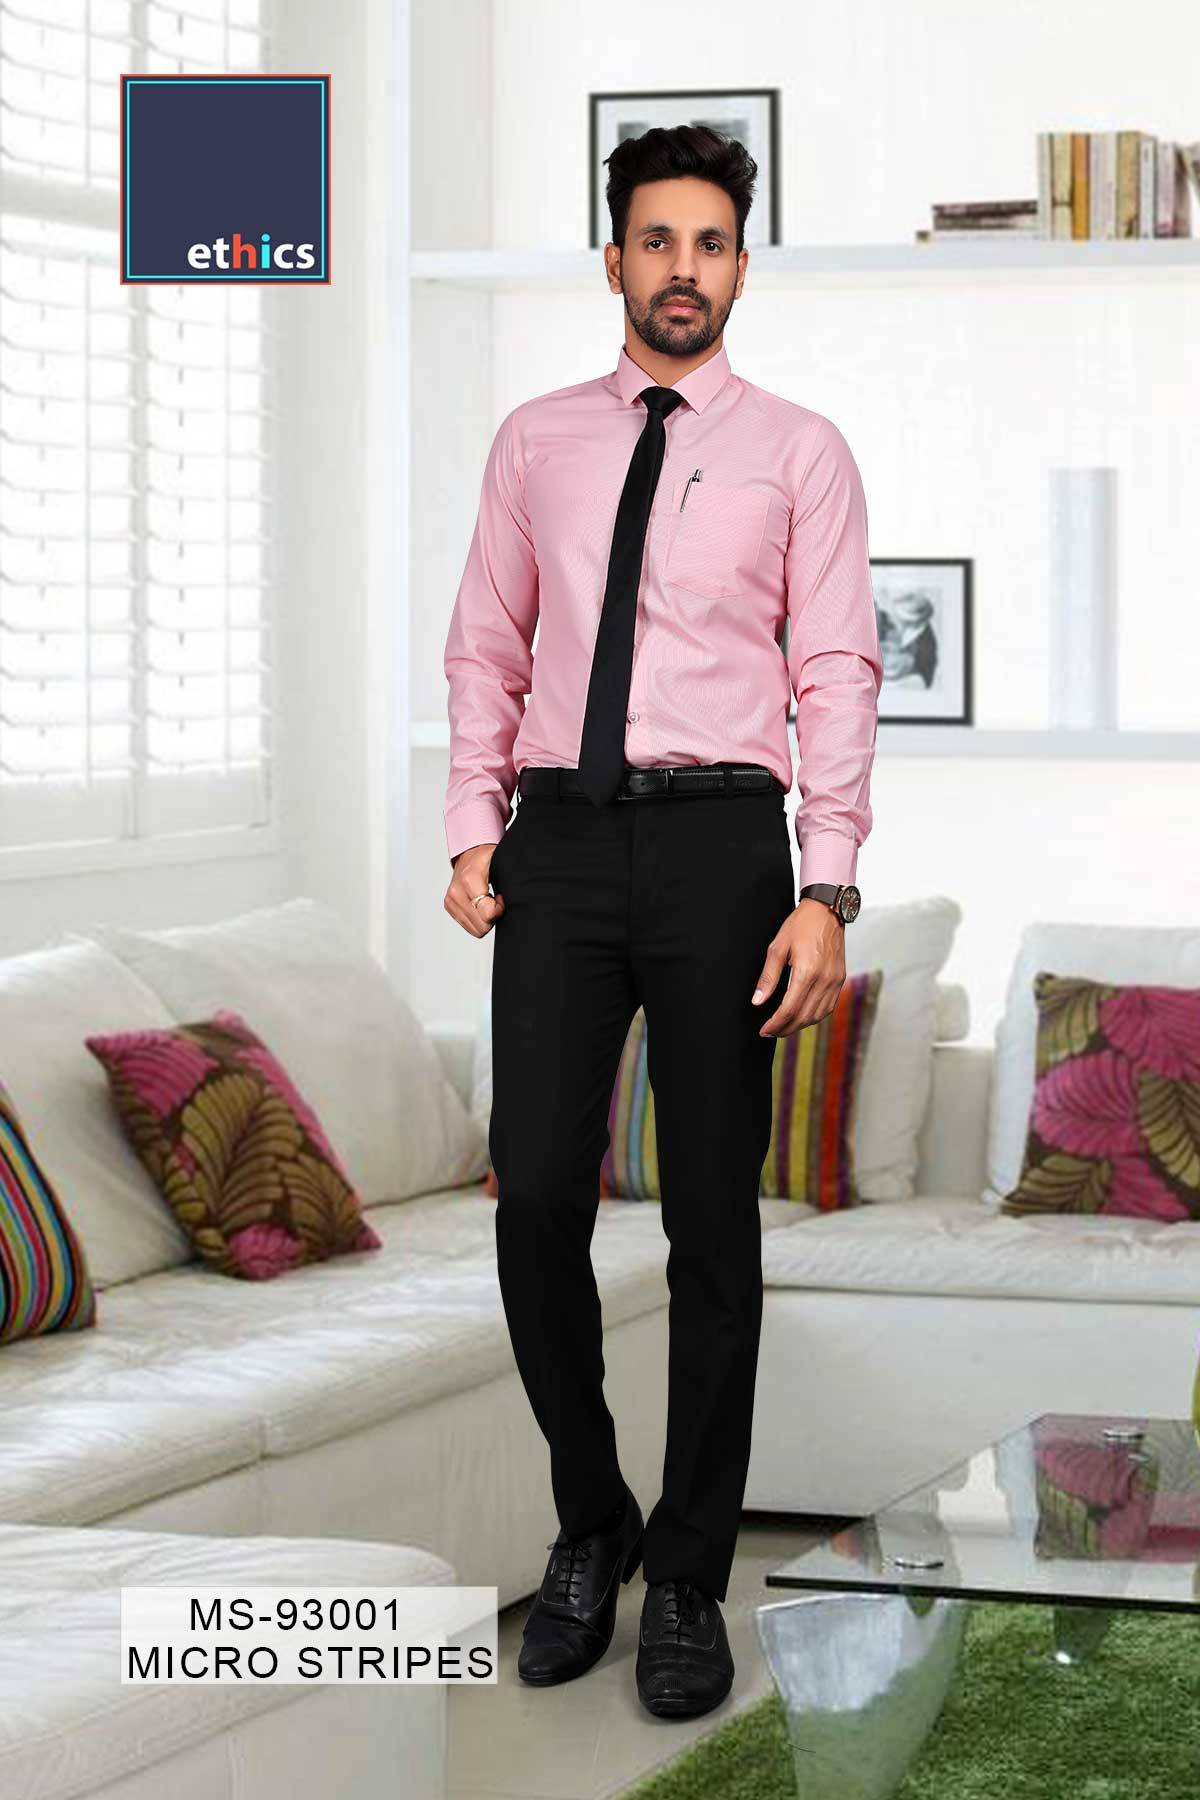 Pink Micro Stripes Mens Uniform Shirts for Corporate Office MS-93001